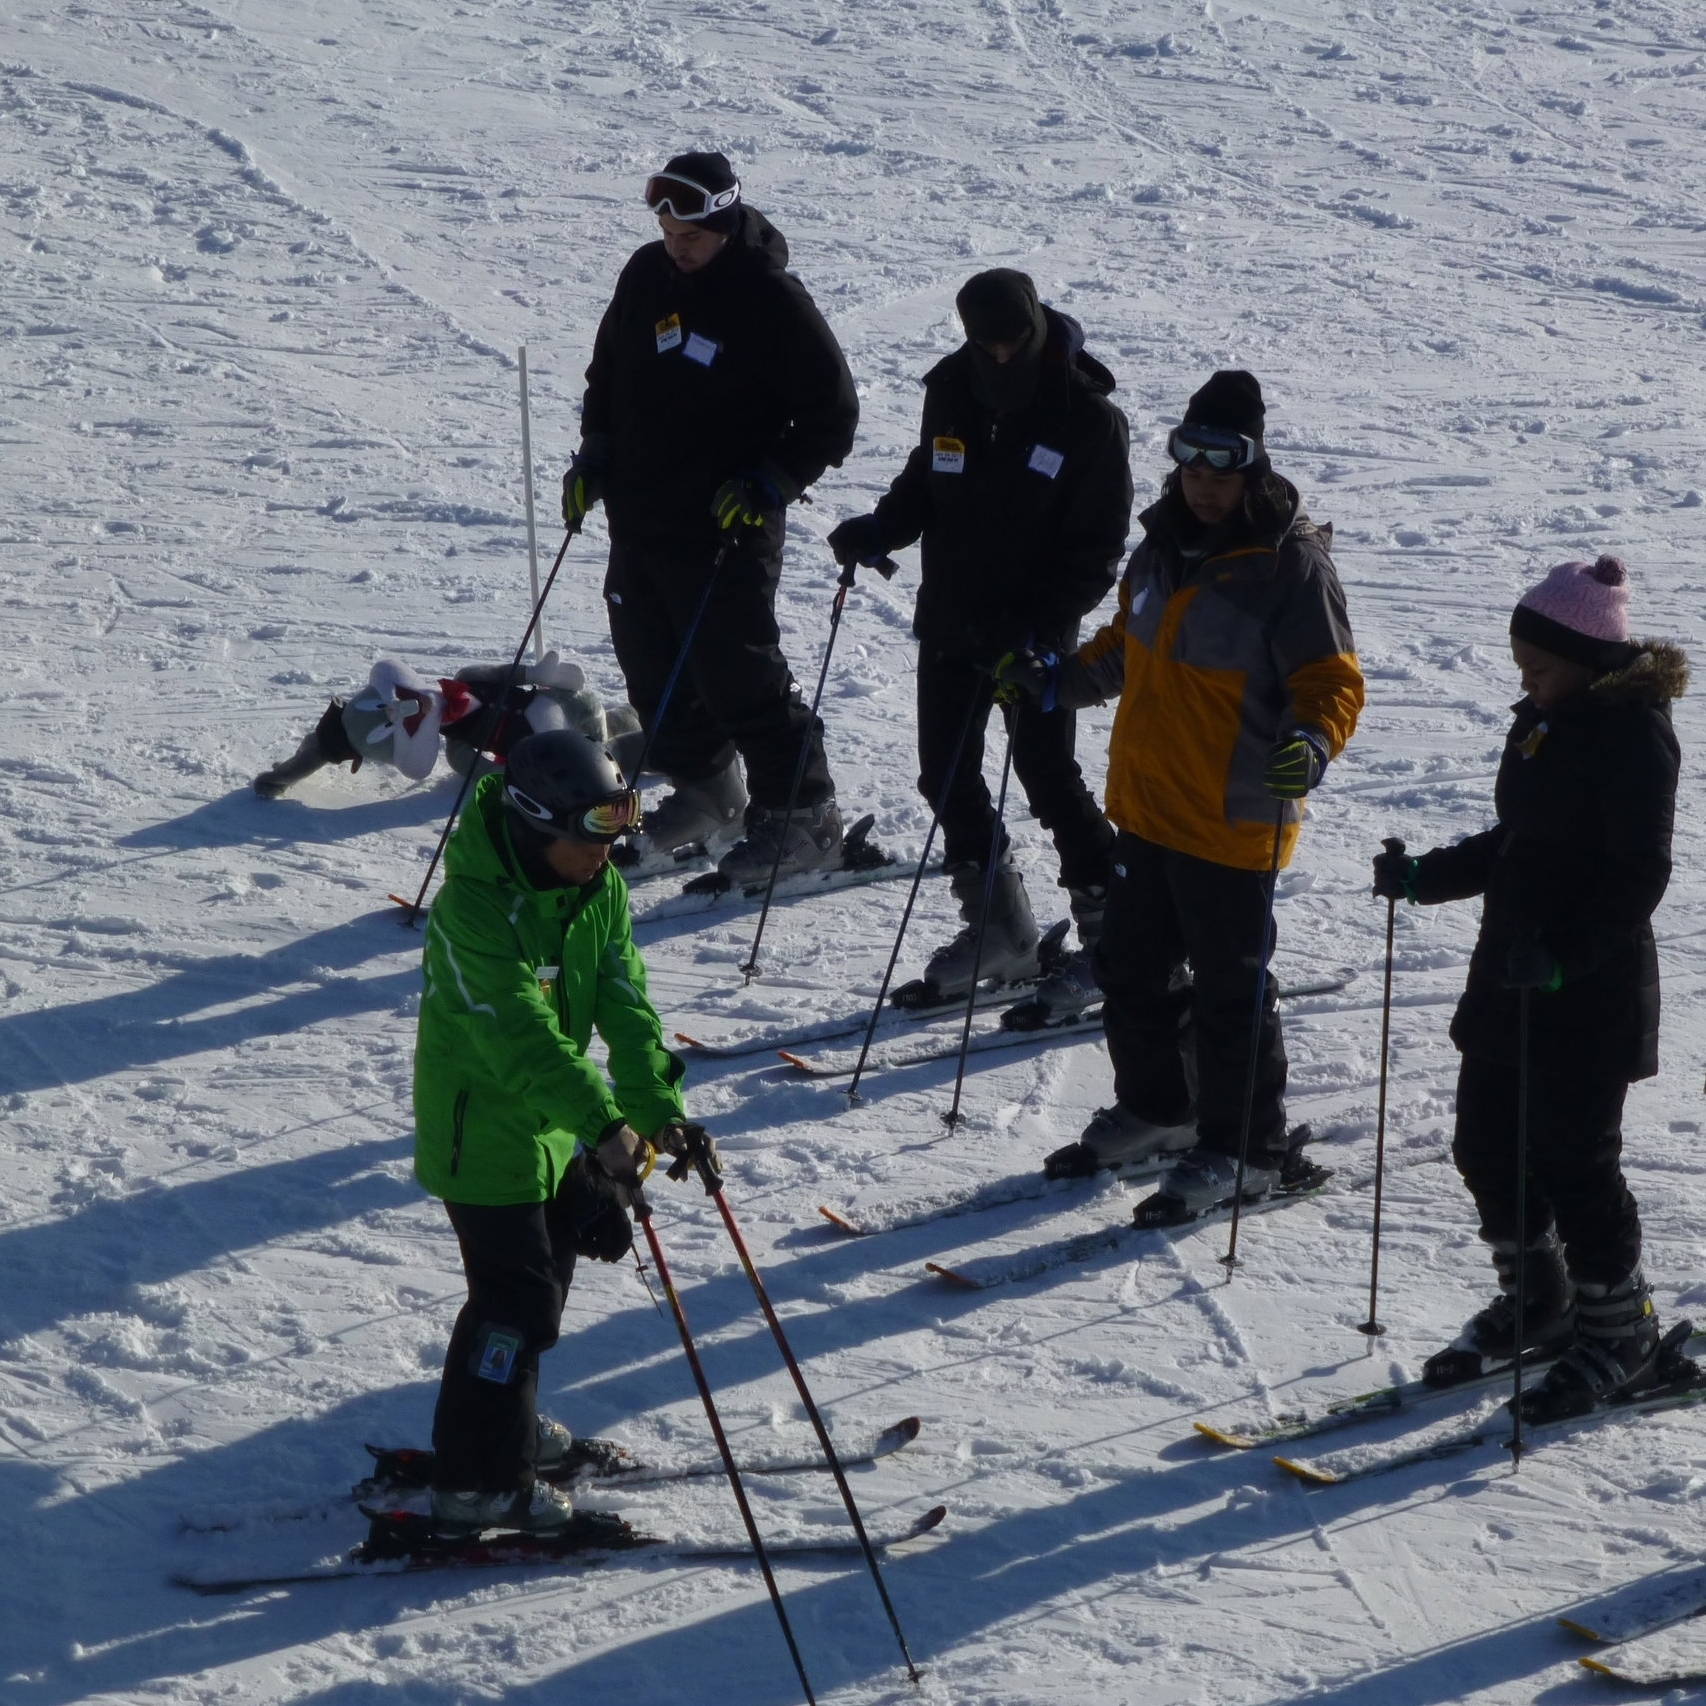 LITTLE BEAR - For beginners and those new to skiing or snowboarding. Group lesson, beginner area lift ticket and equipment rental. For Ages 6 and up. $82